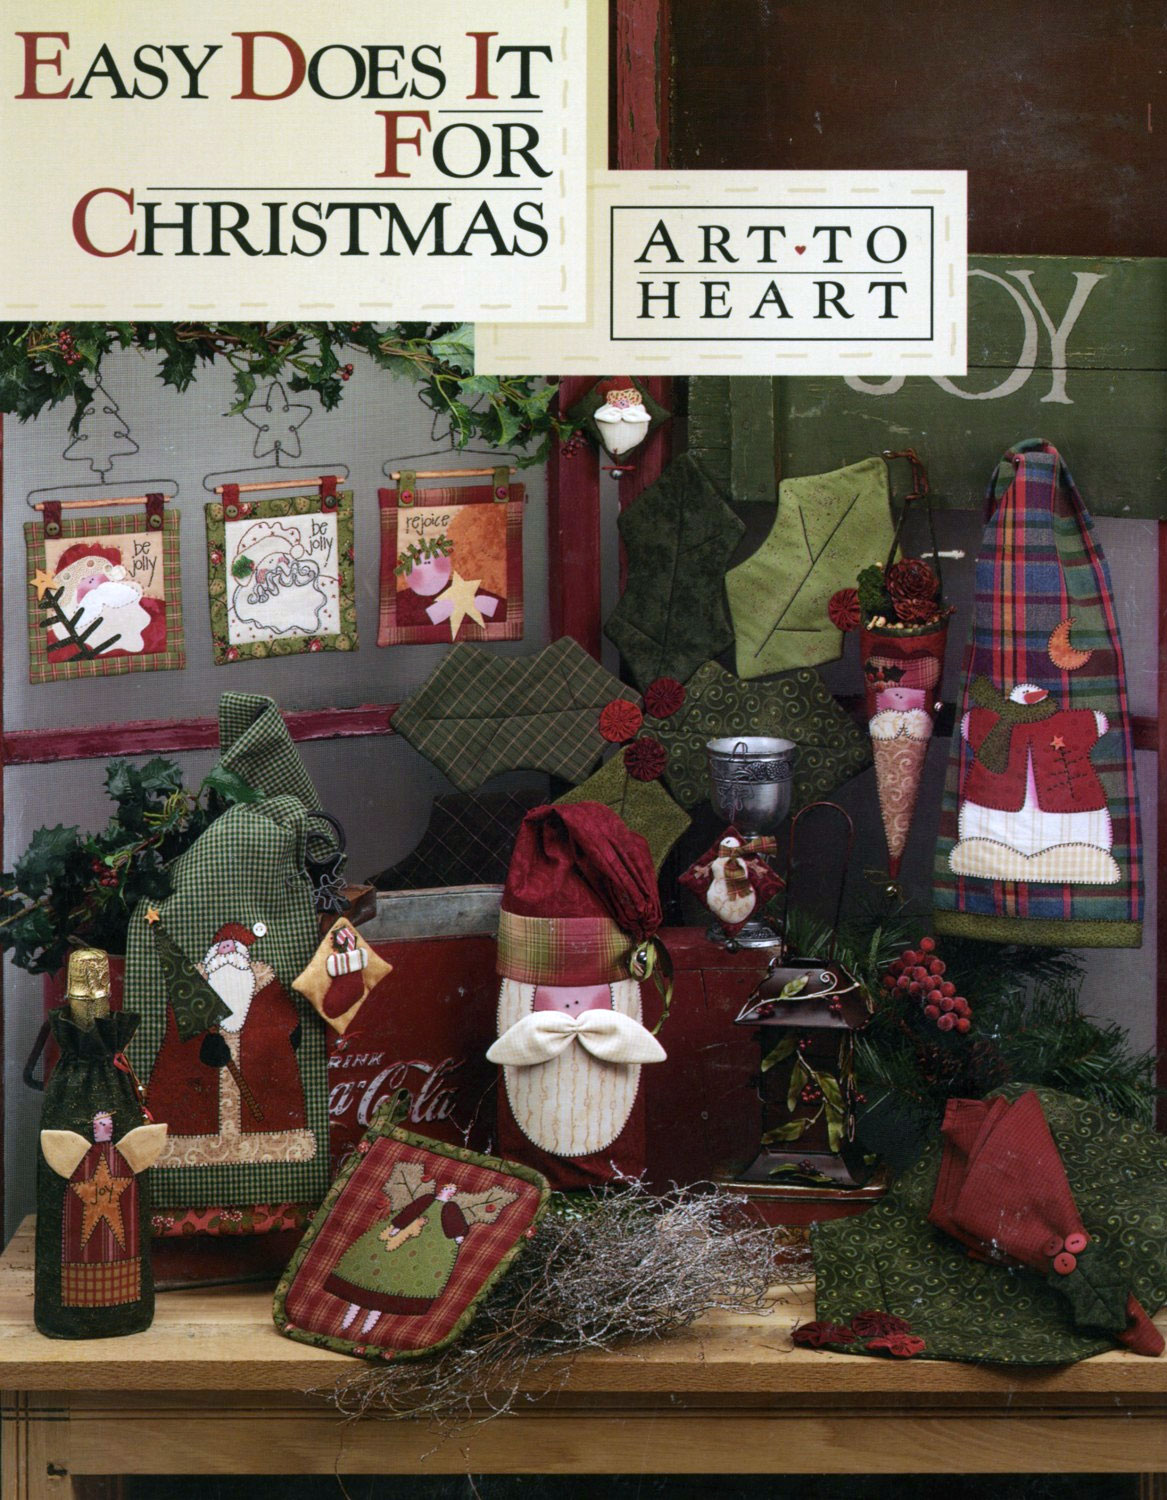 Easy-Does-It-For-Christmas-sewing-book-Art-To-Heart-front.jpg